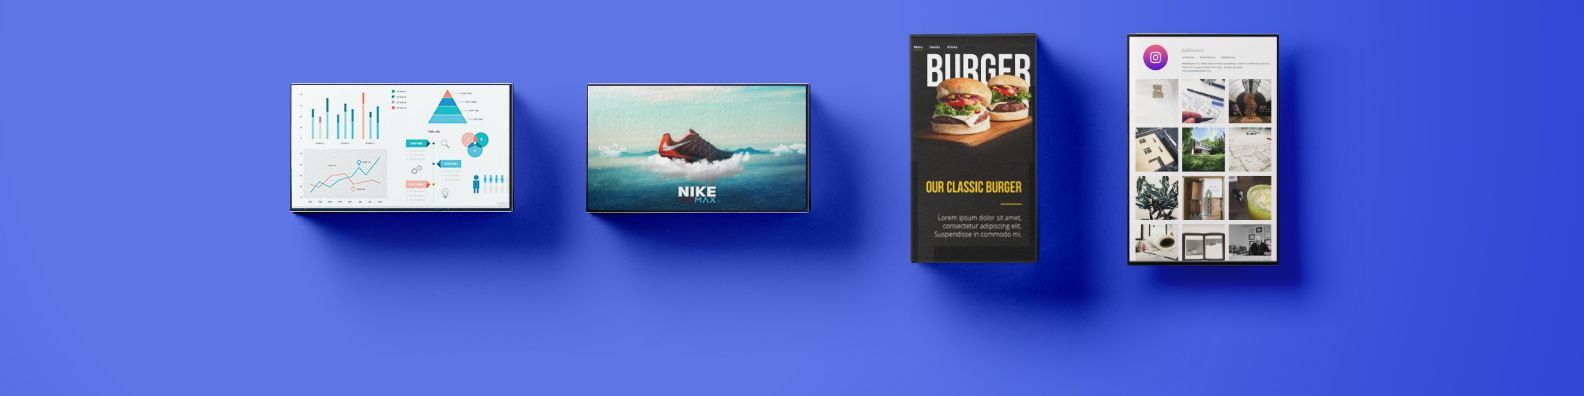 digital signage content mistakes